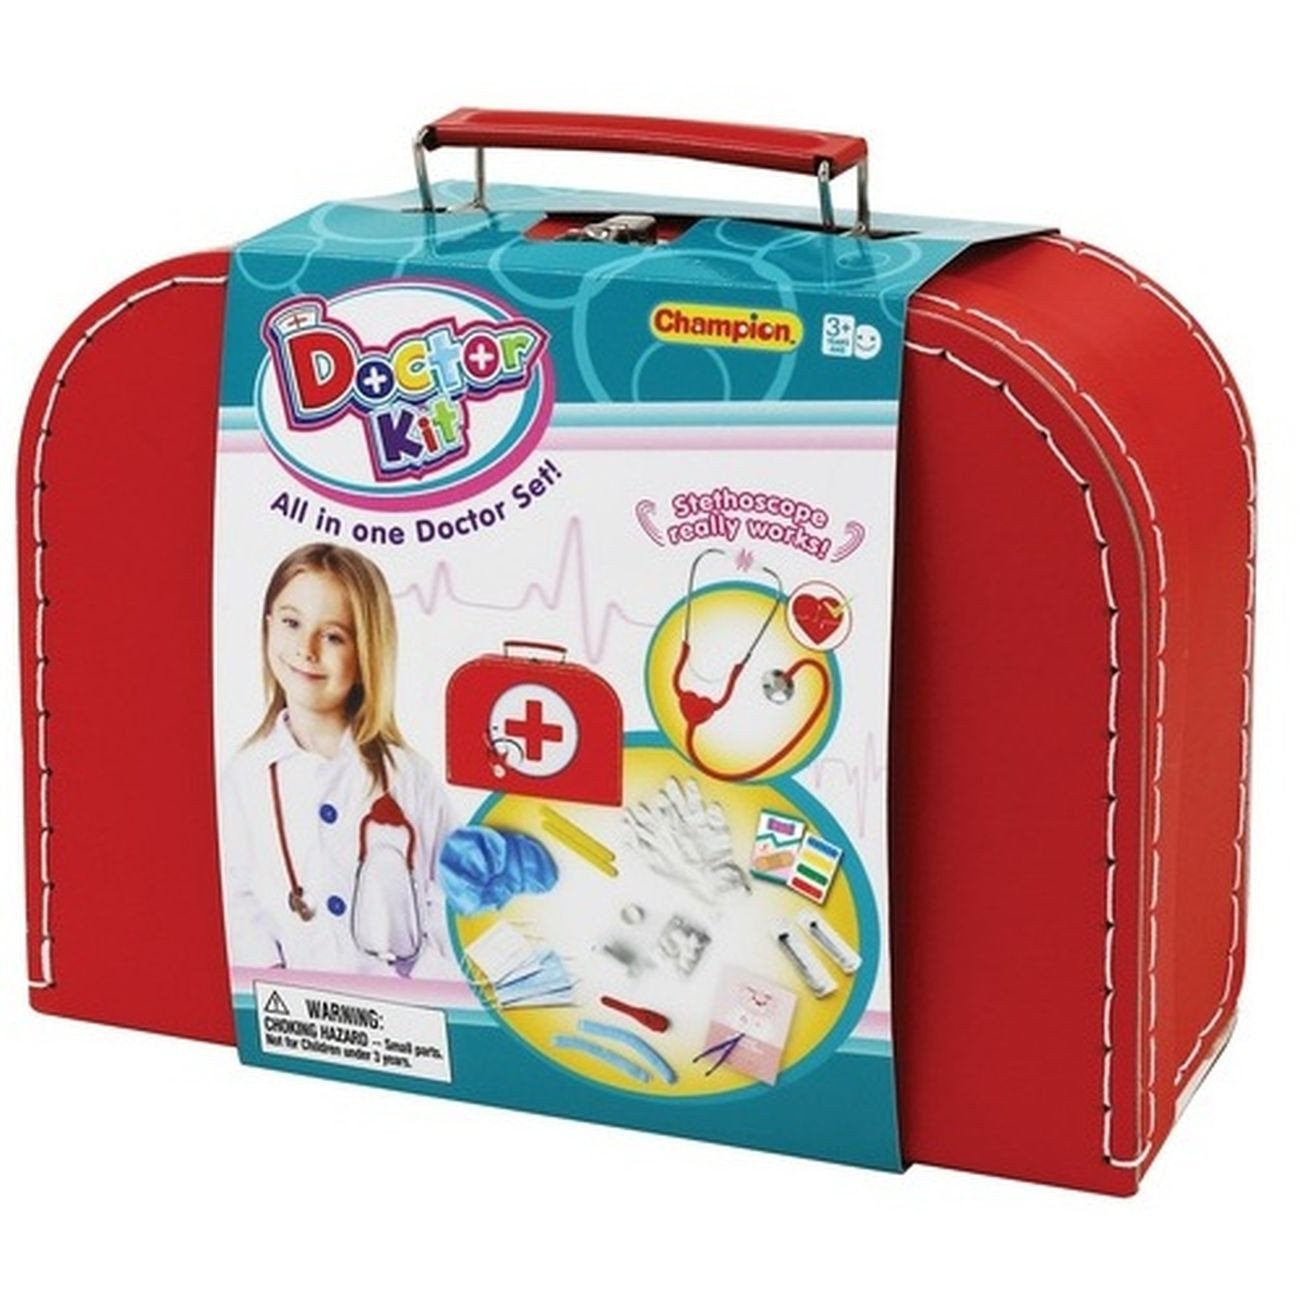 DOCTOR SET DELUXE CASE 26PC